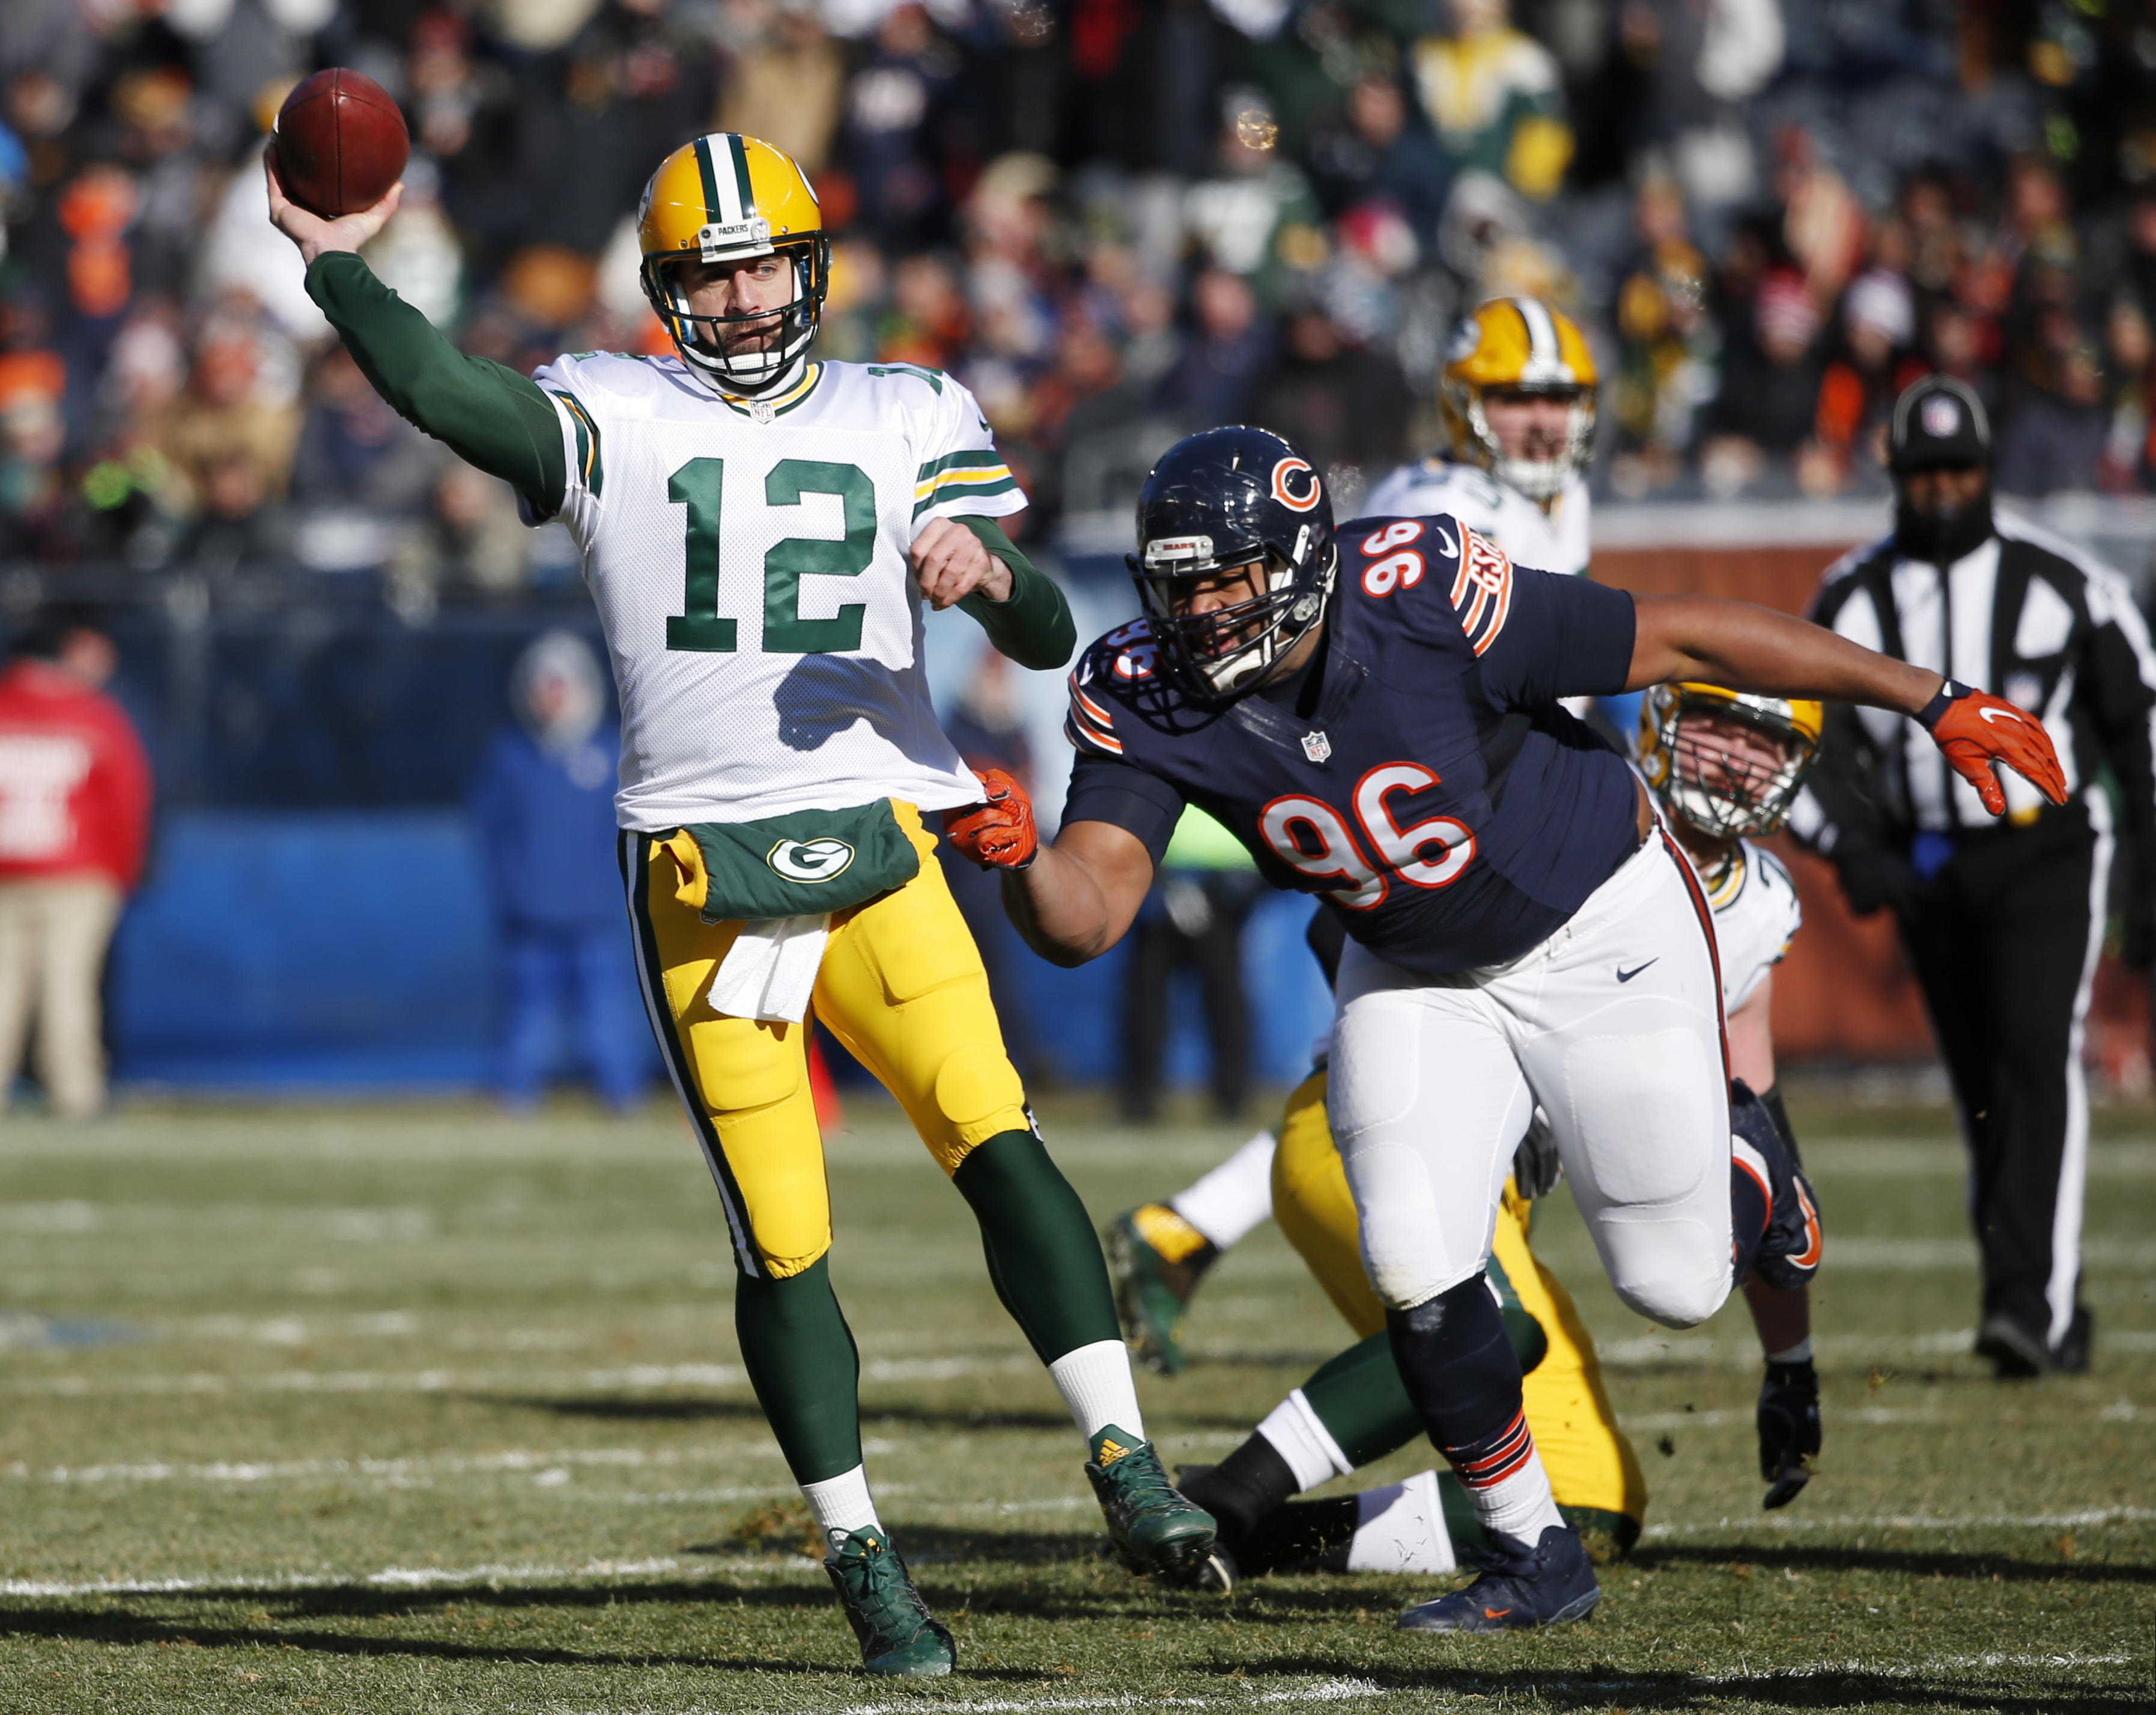 Green Bay Packers quarterback Aaron Rodgers (12) throws a pass against Chicago Bears defensive end Akiem Hicks (96) during the first half of an NFL football game, Sunday, Dec. 18, 2016, in Chicago. (AP Photo/Nam Y. Huh)